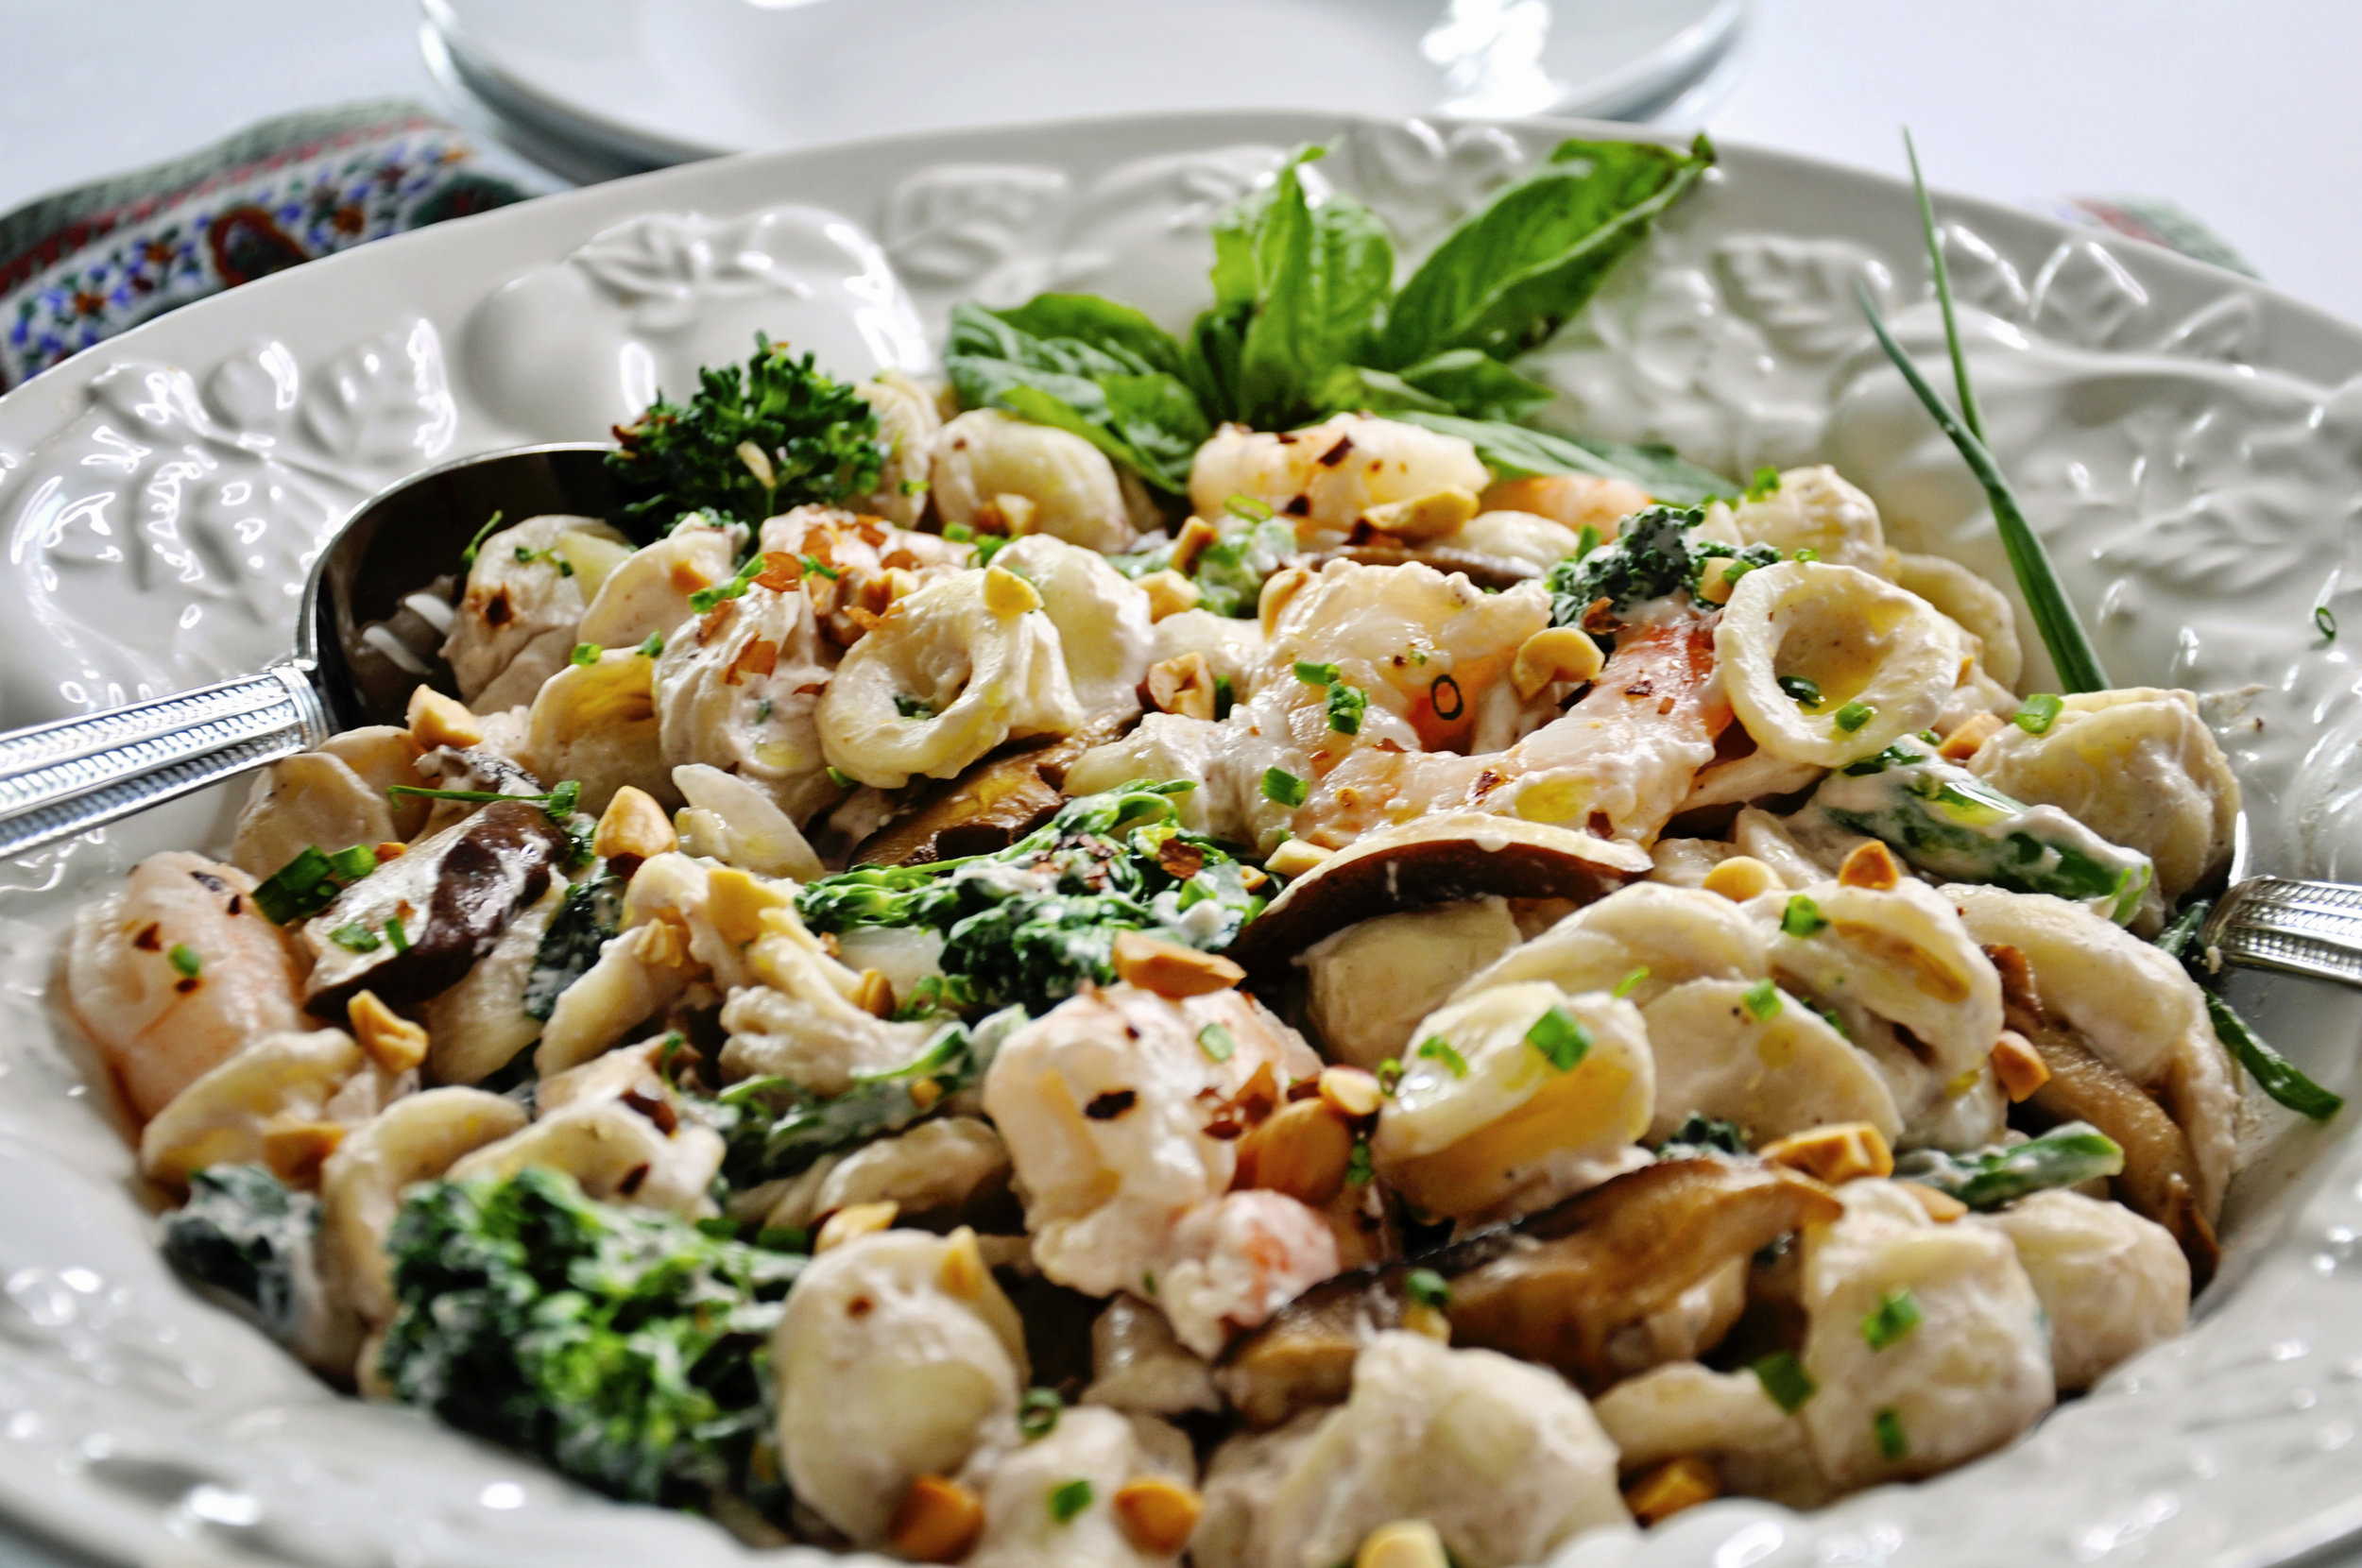 Orecchiette Peanut Sauce with Shrimp & Broccoli Rabe